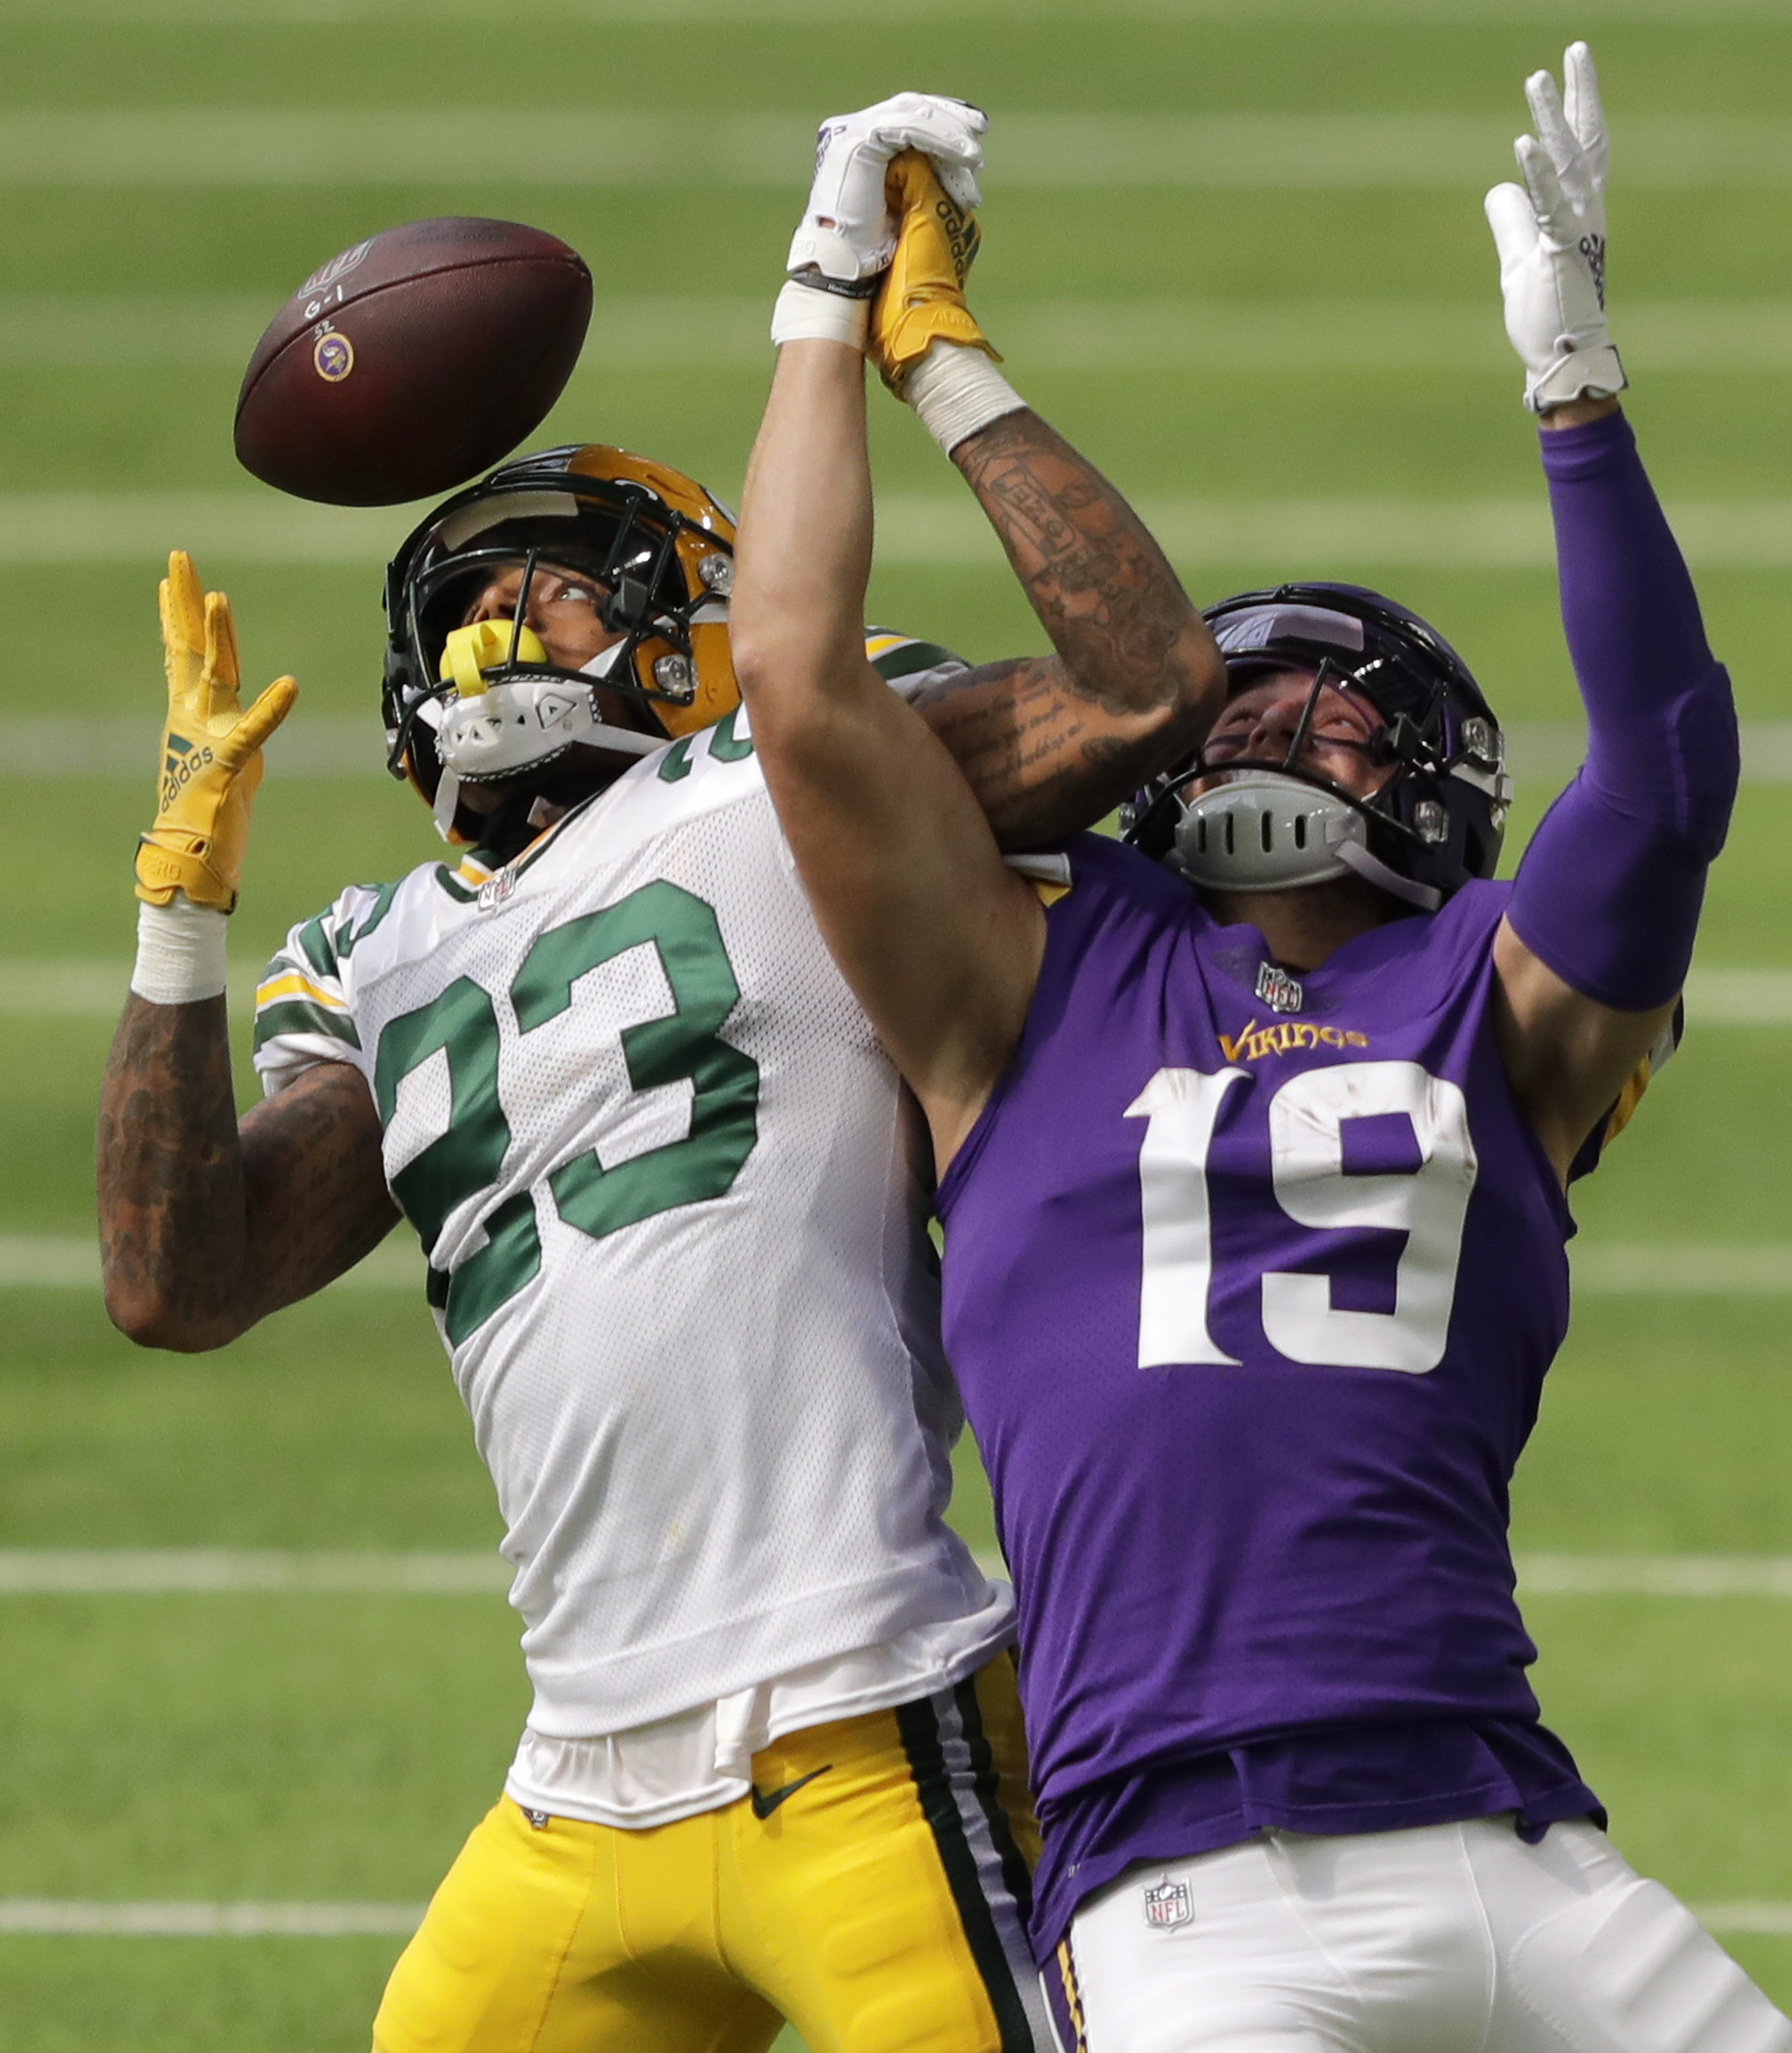 Green Bay Packers Vs Vikings Preview Predictions 5 Things To Watch